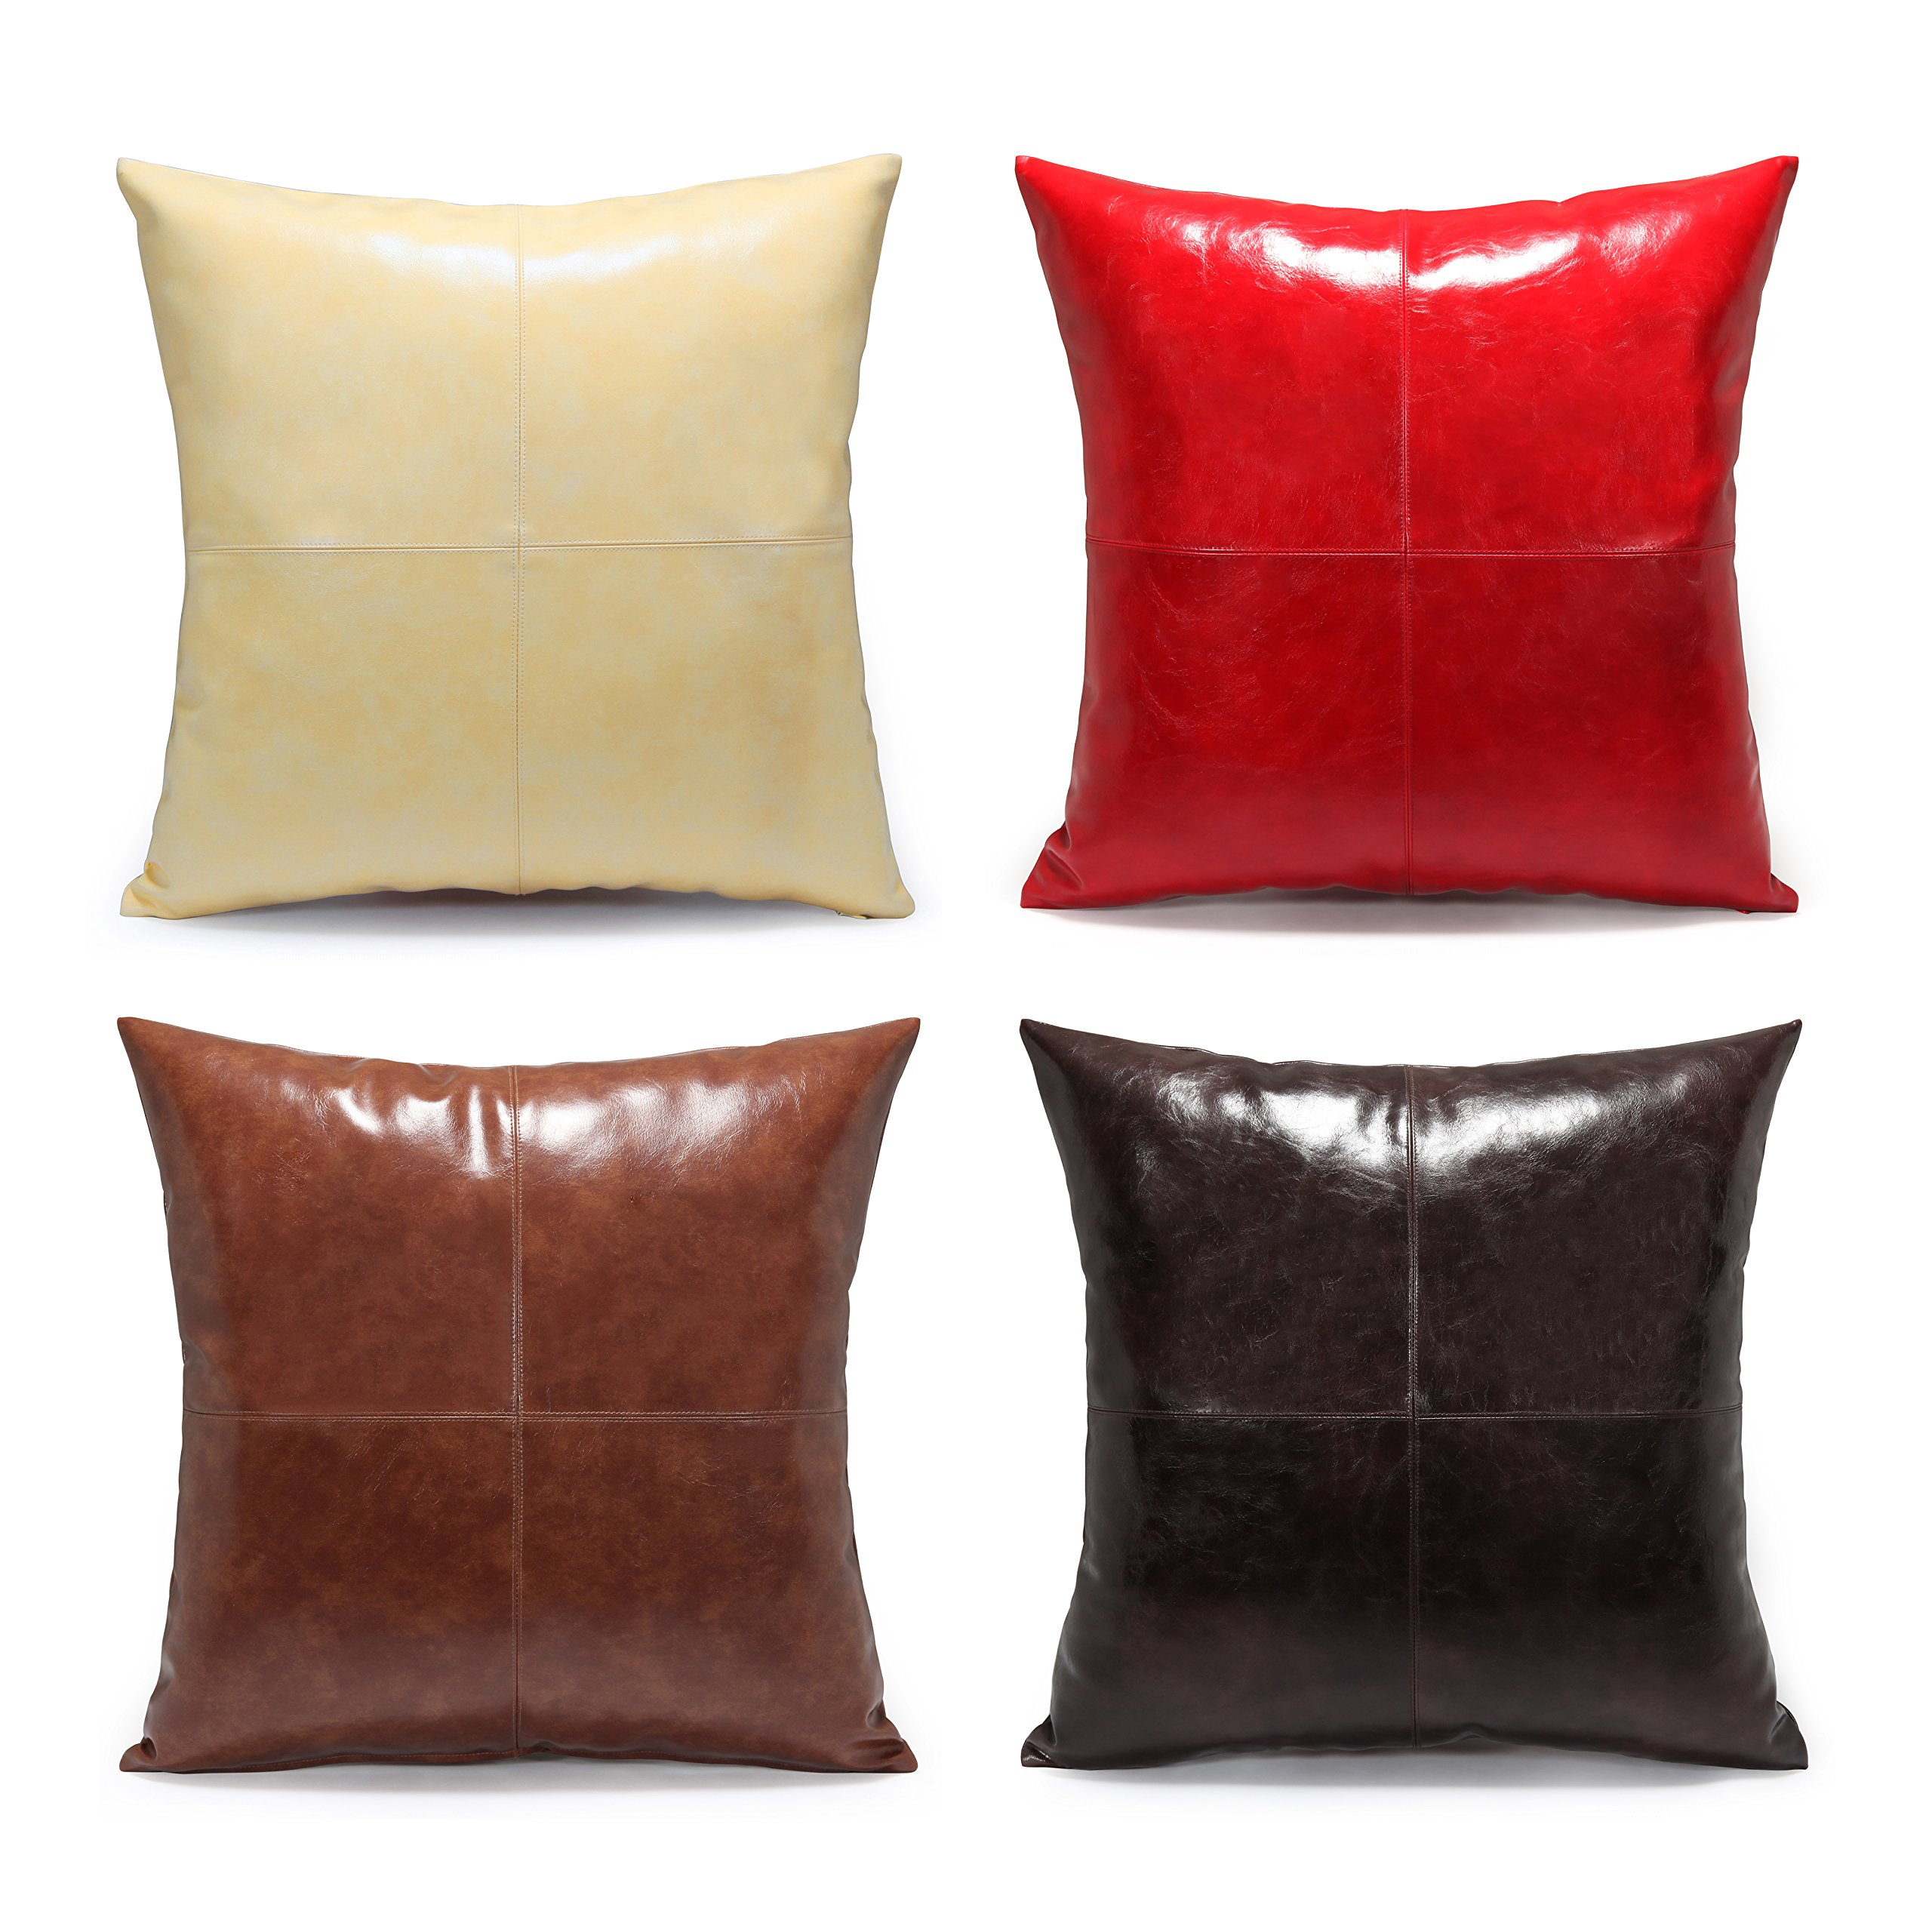 Acanva Decorative Accent Throw Pillow Faux Leather Cushion with Pillowcase Cover Sham and Insert Filling, Solid Color, Set of 4